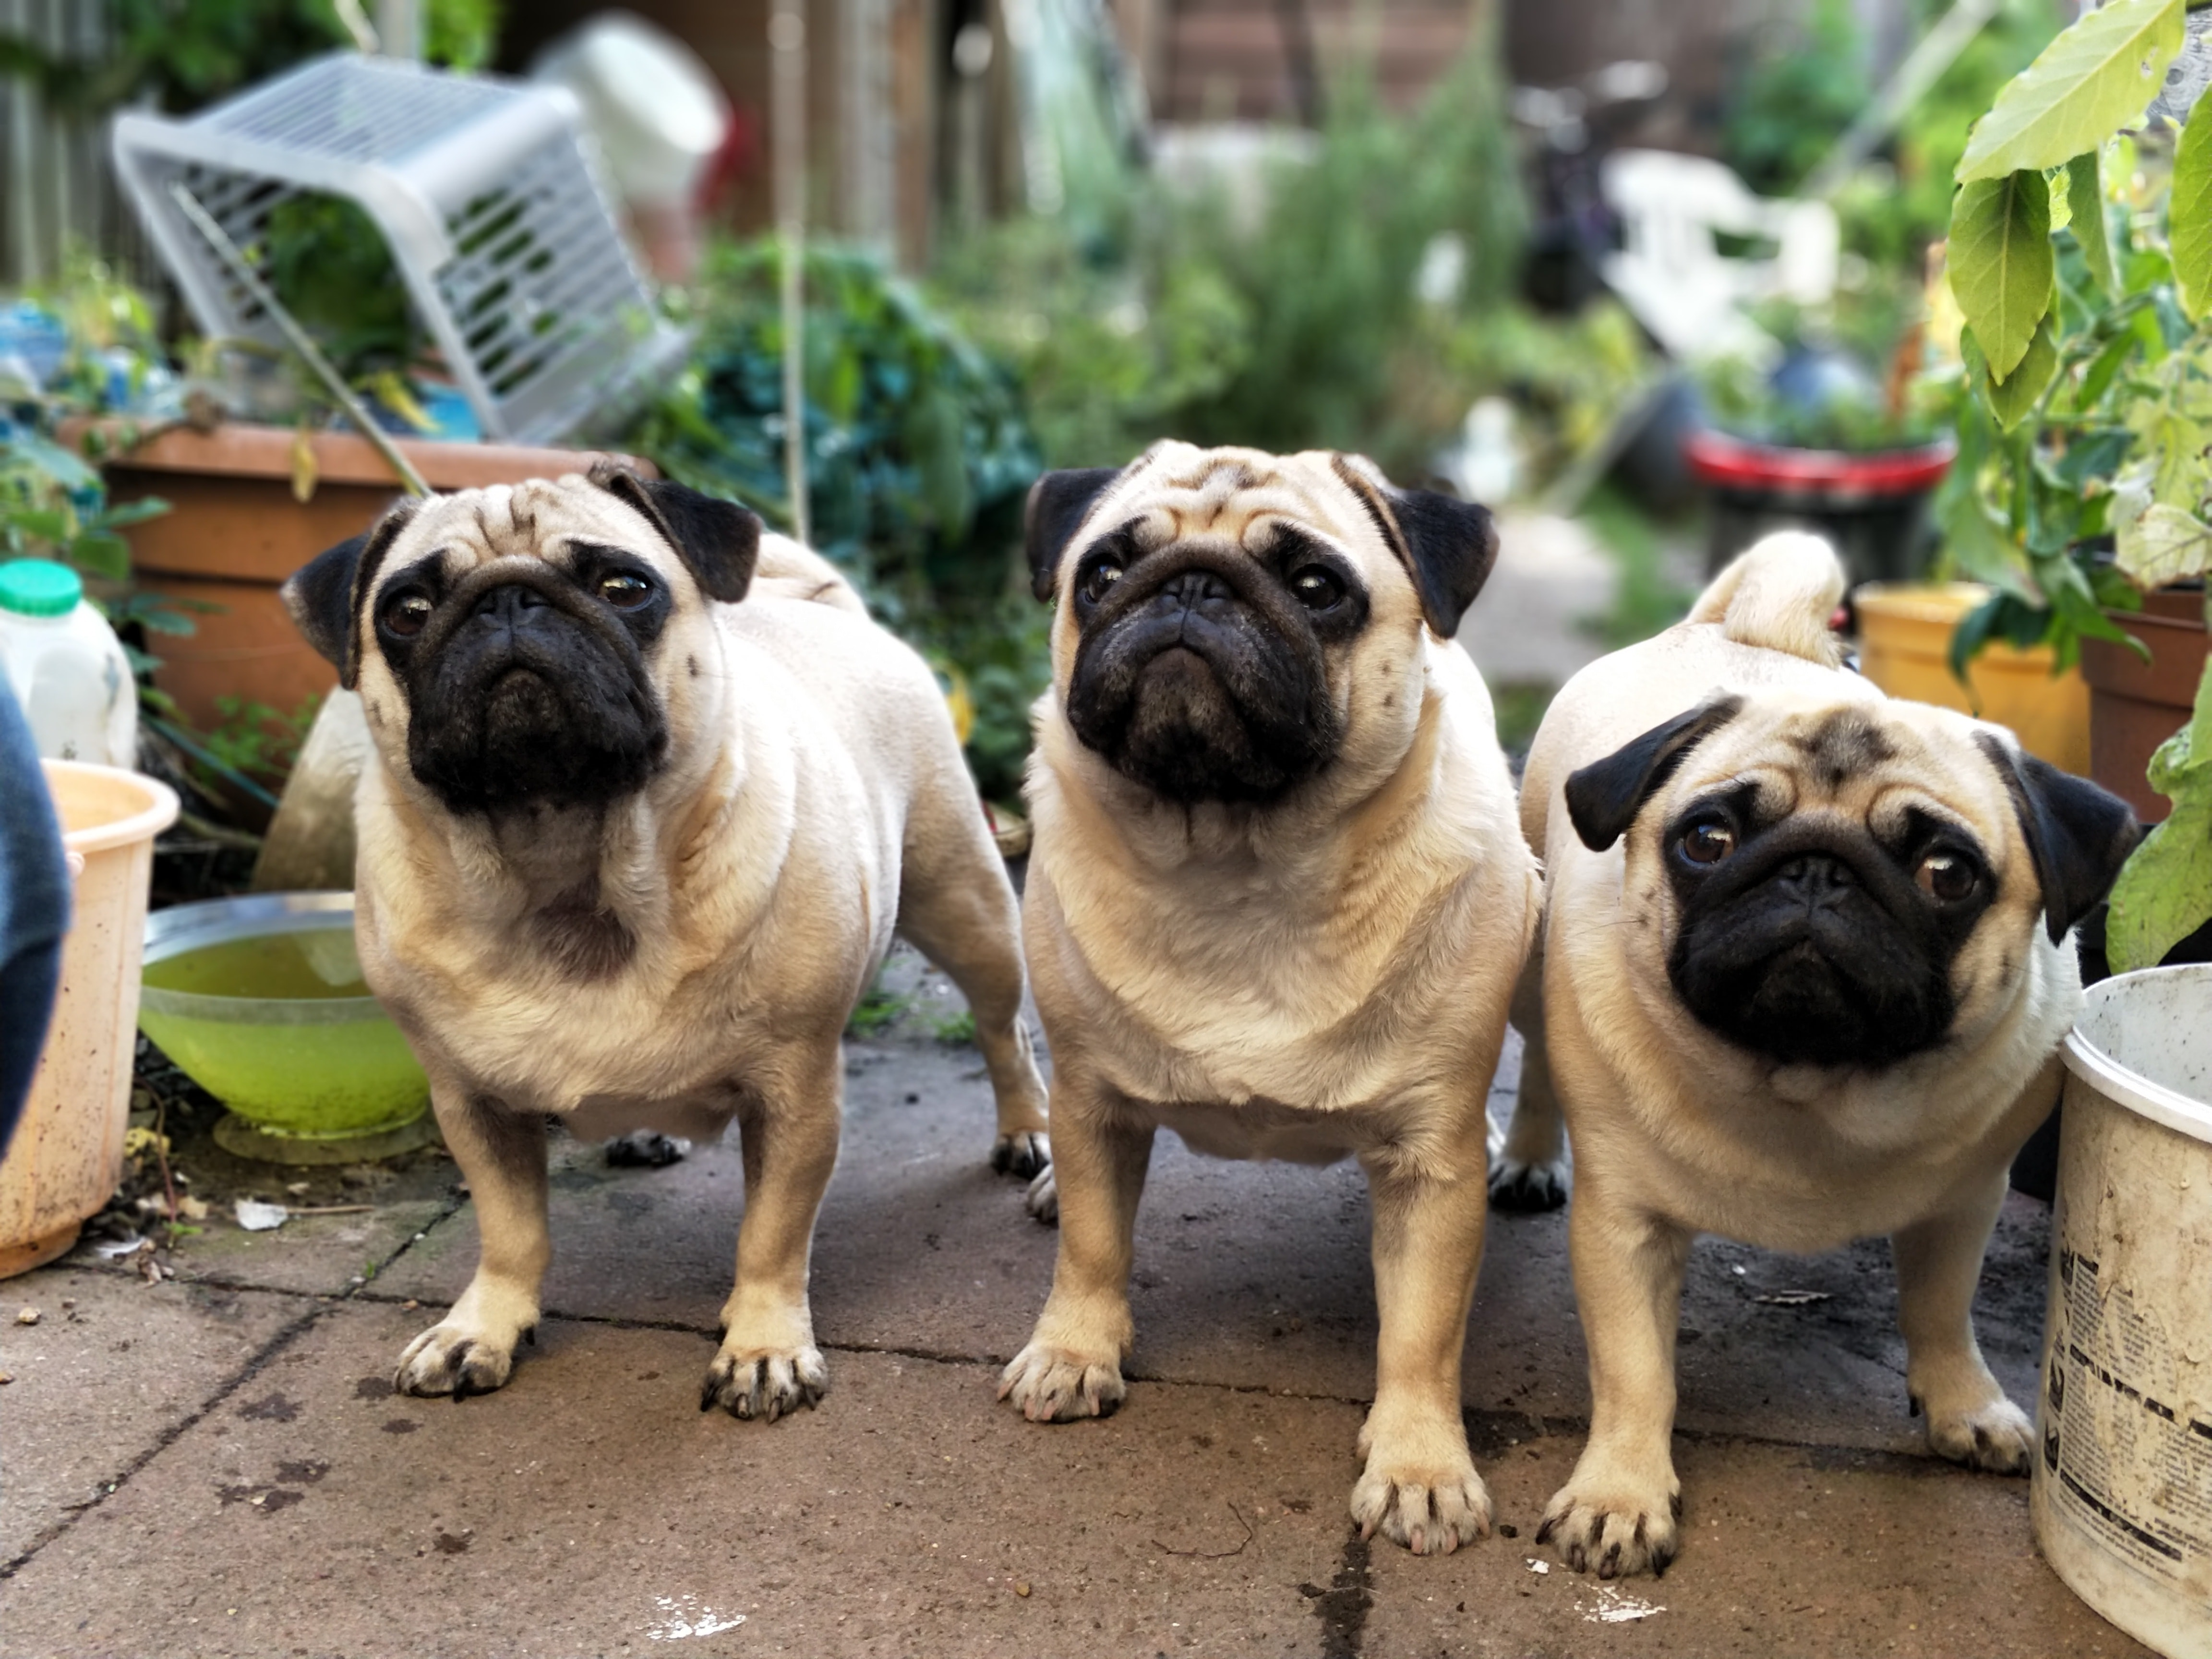 Three pugs standing at attention in a shed full of potted plants